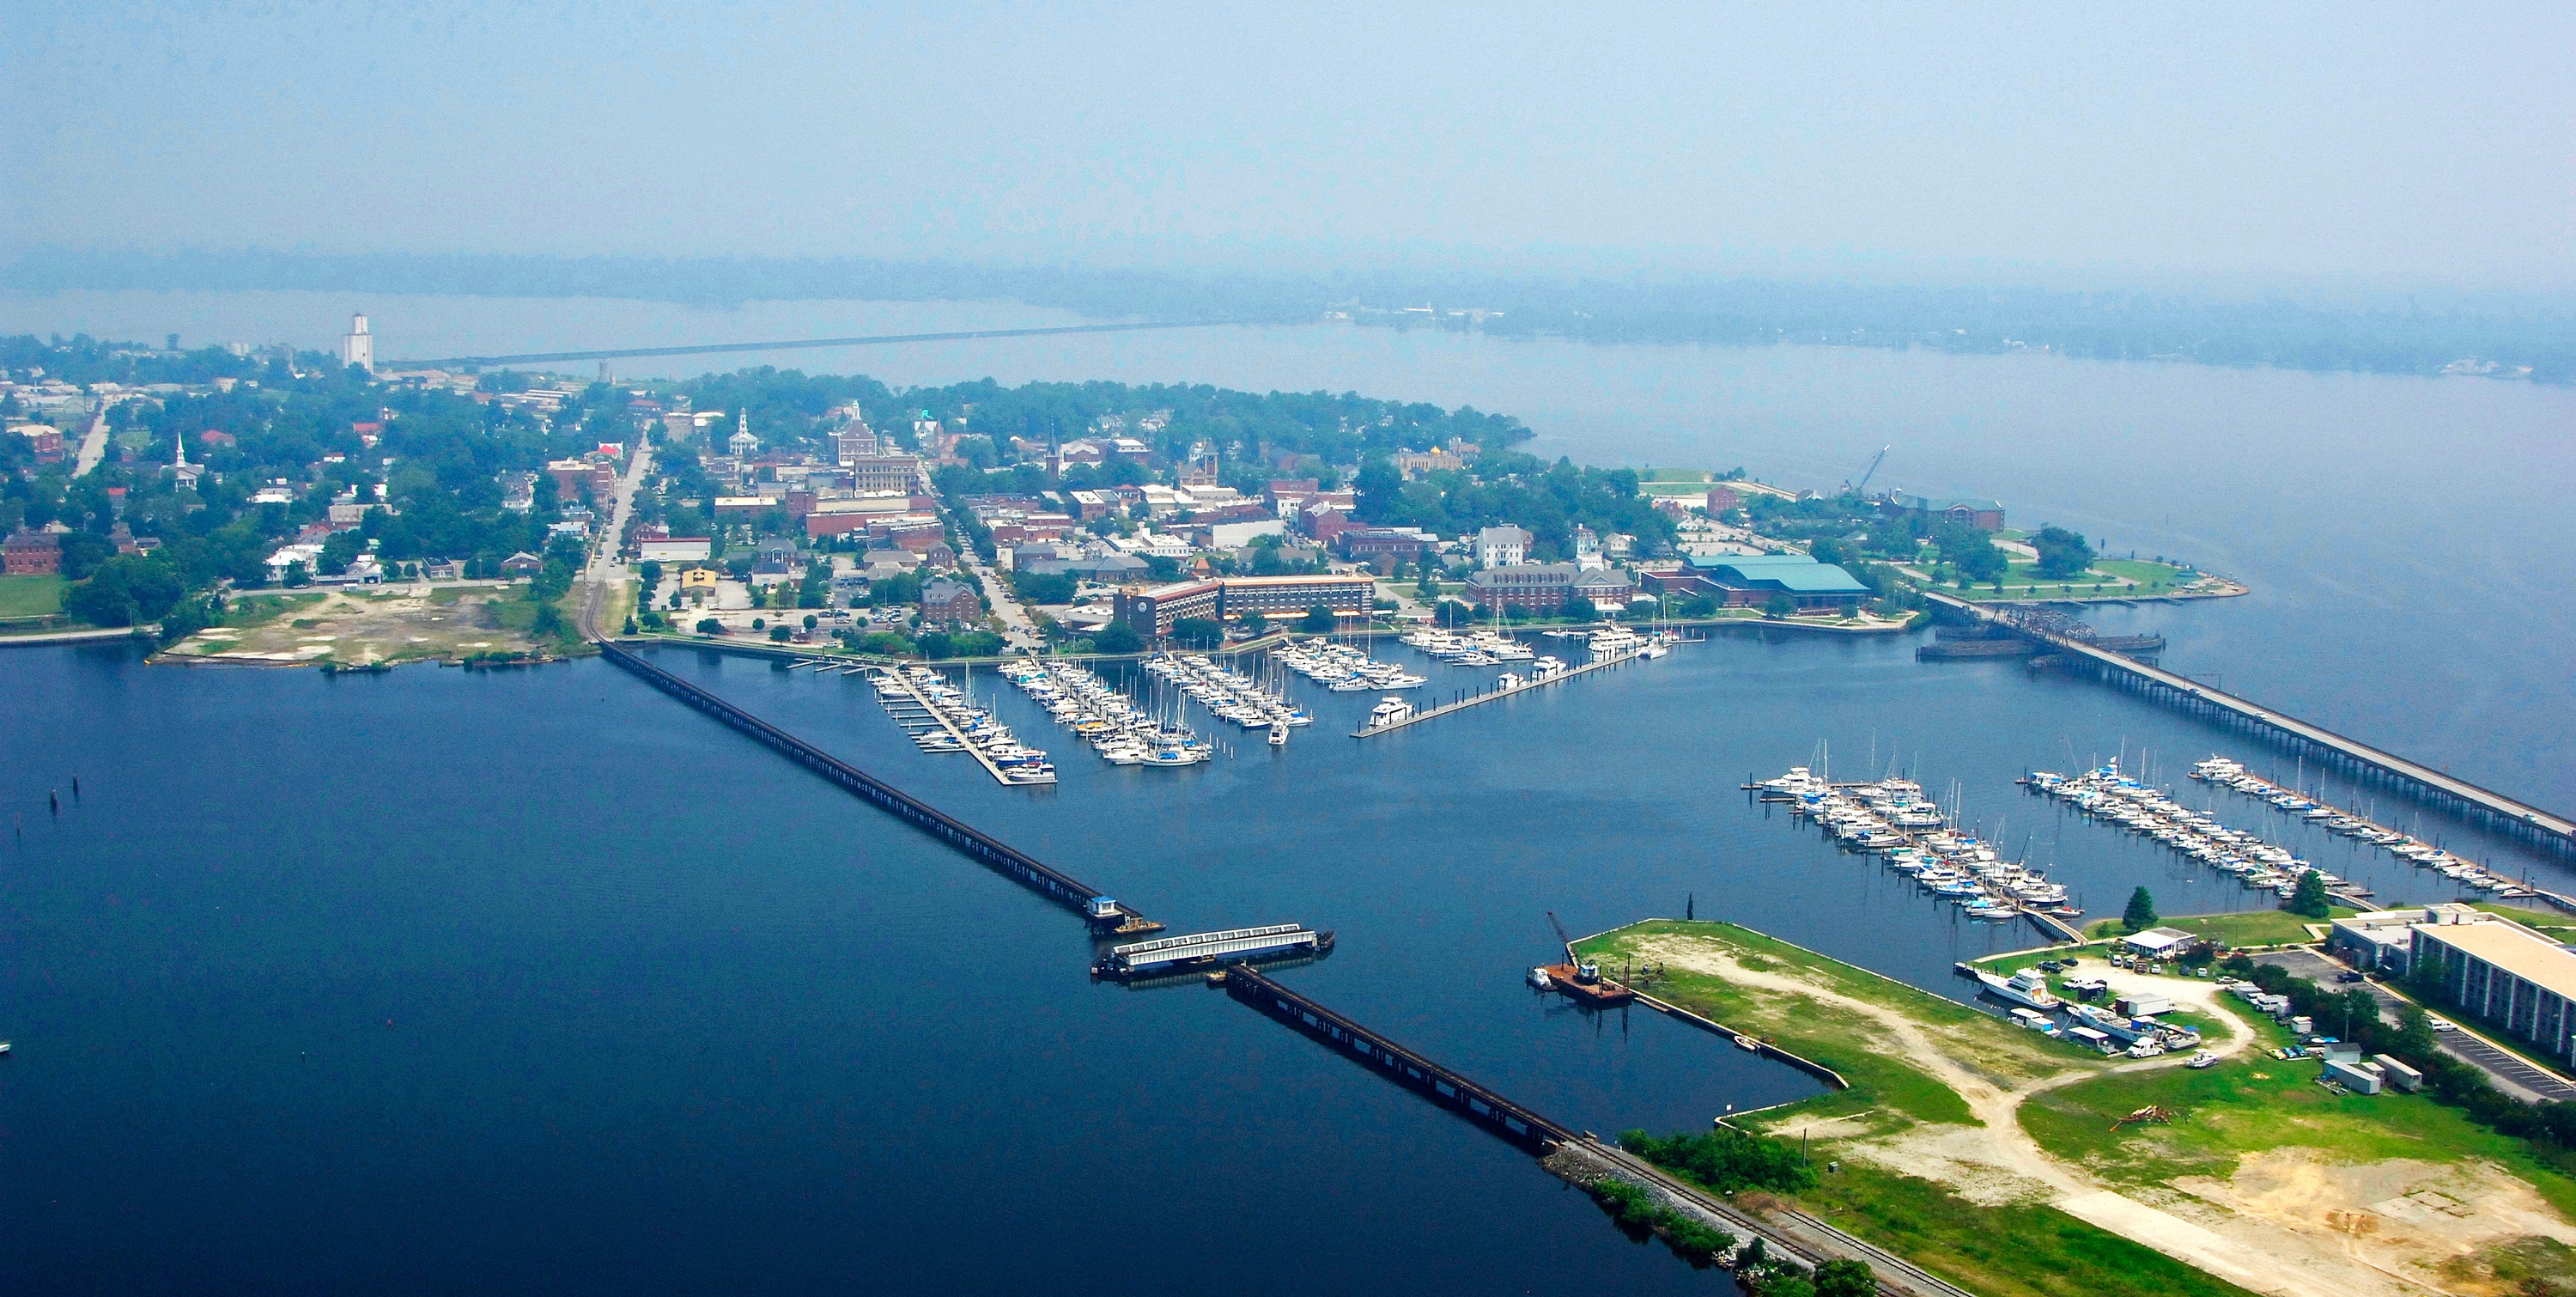 New Bern Grand Marina in New Bern, North Carolina